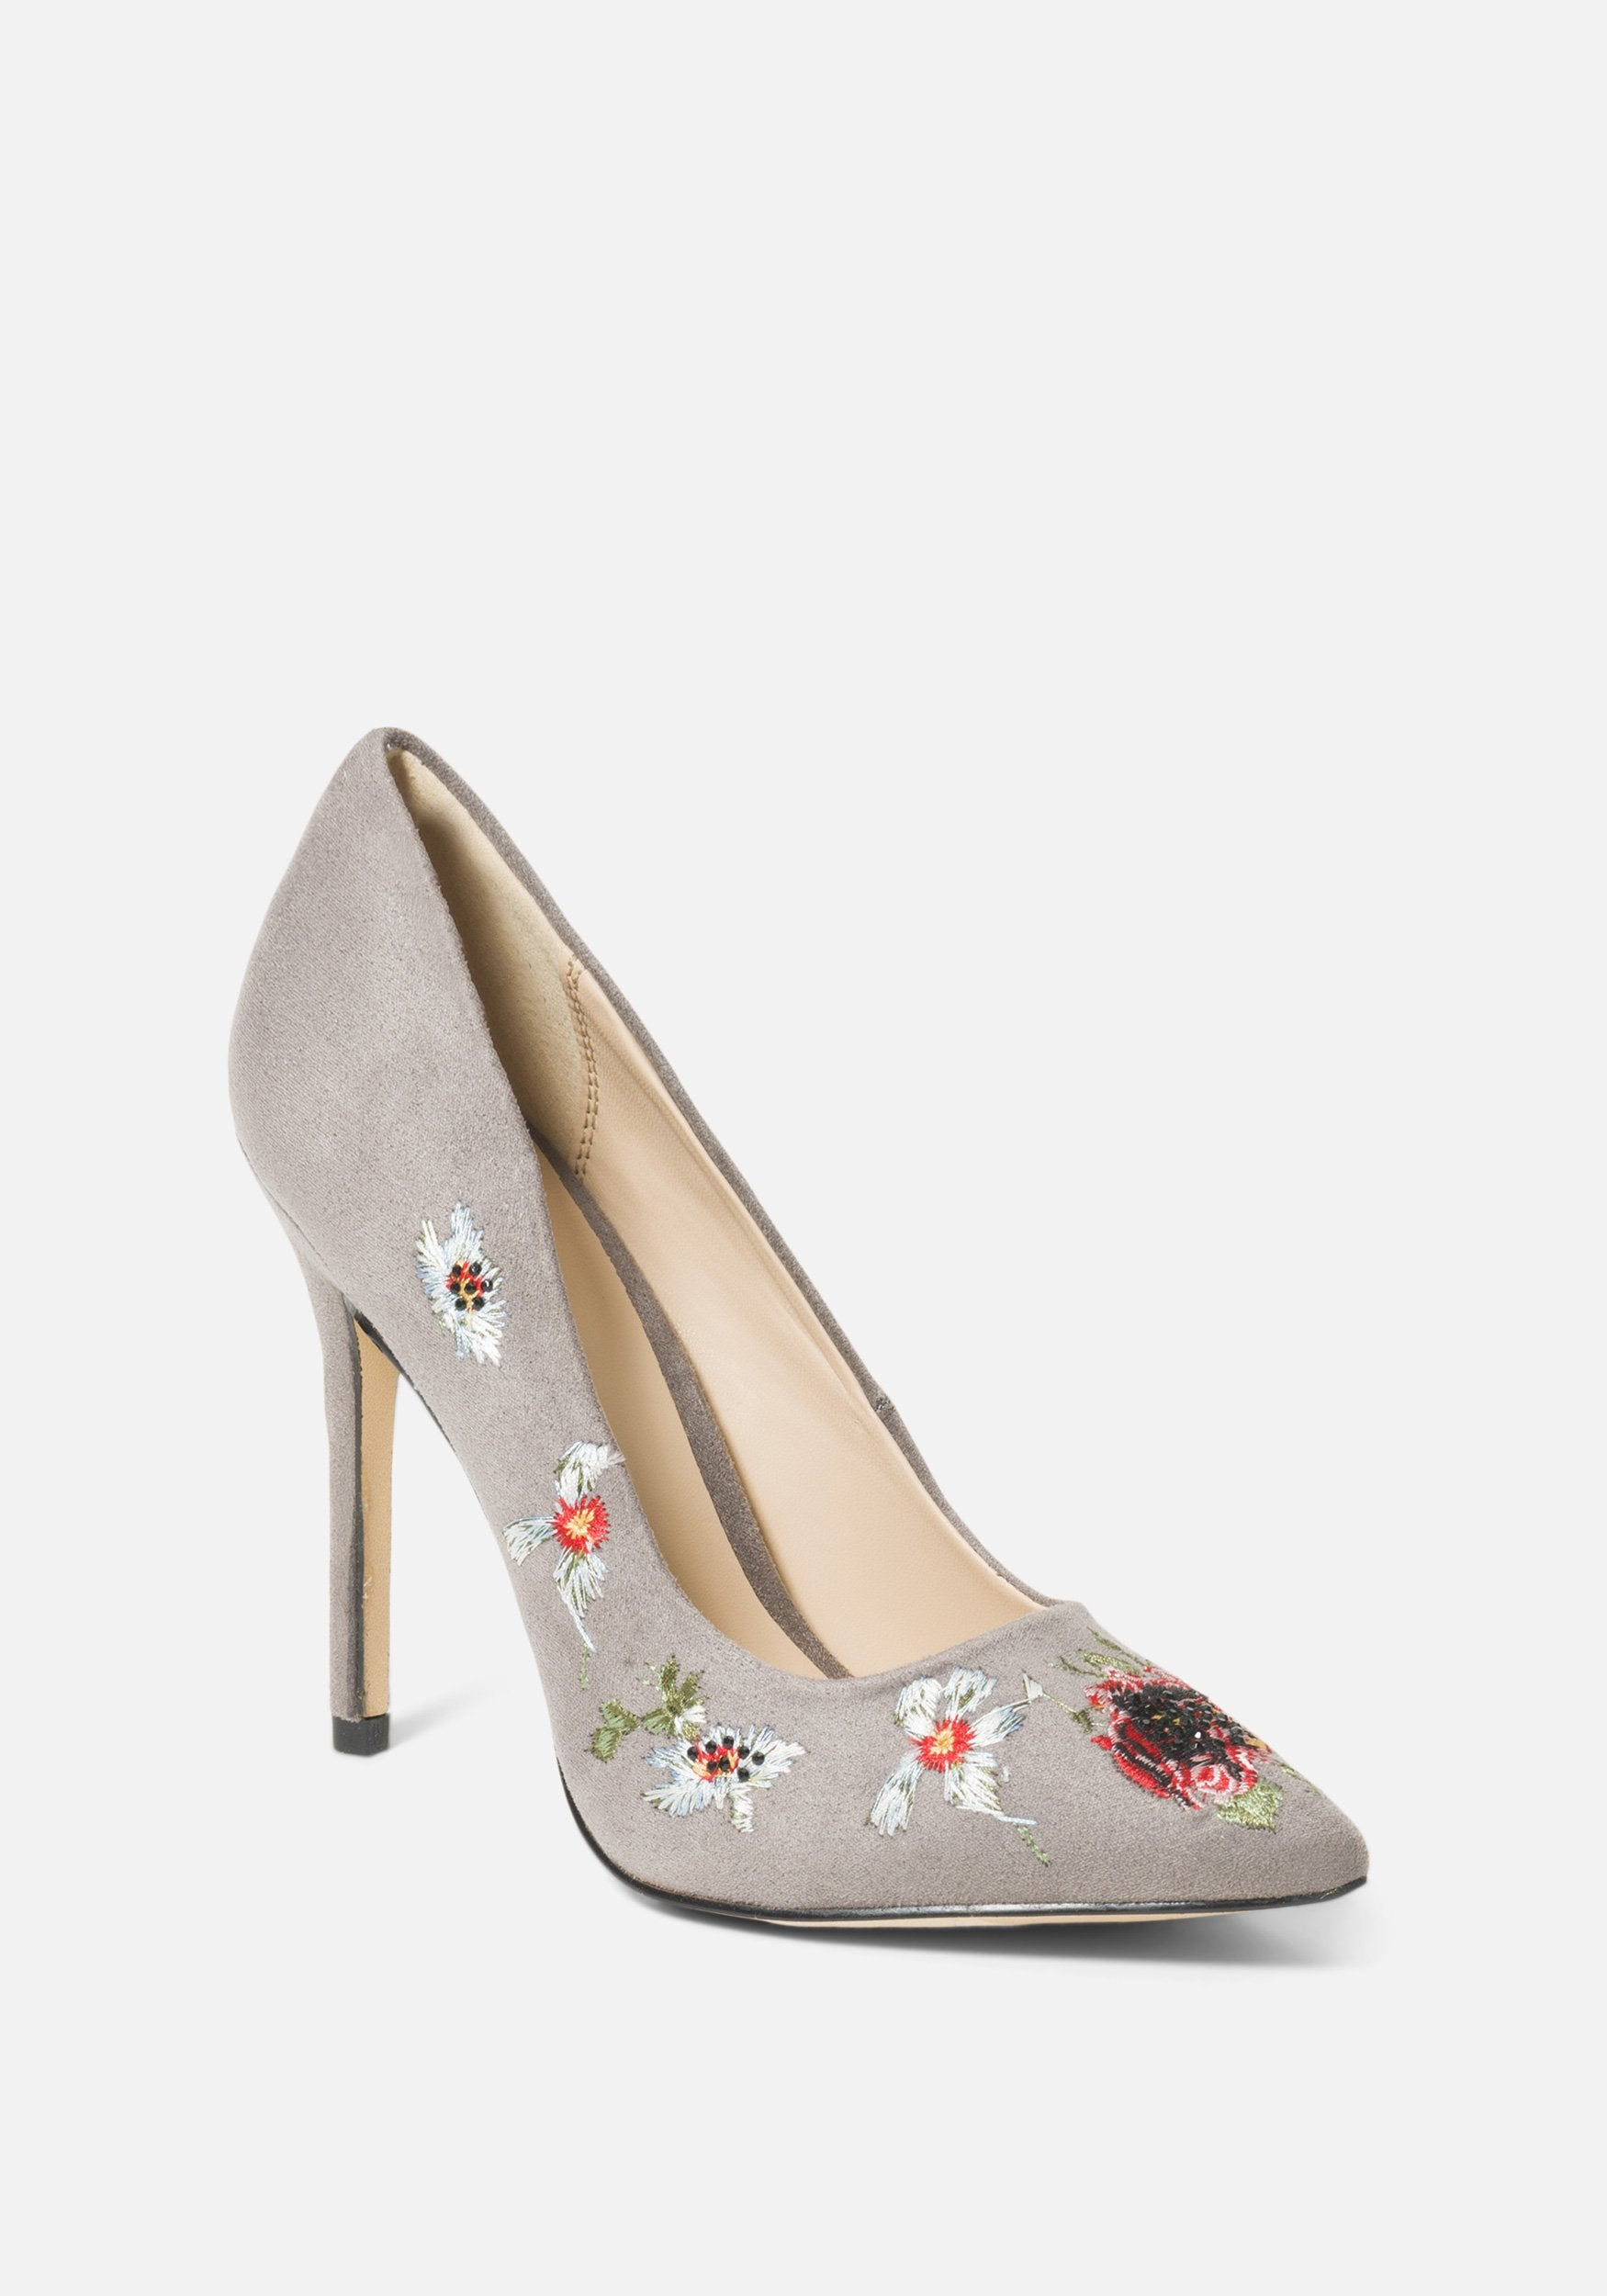 Bebe Women's Leyton Embroidery Pumps, Size 6 in Grey Synthetic